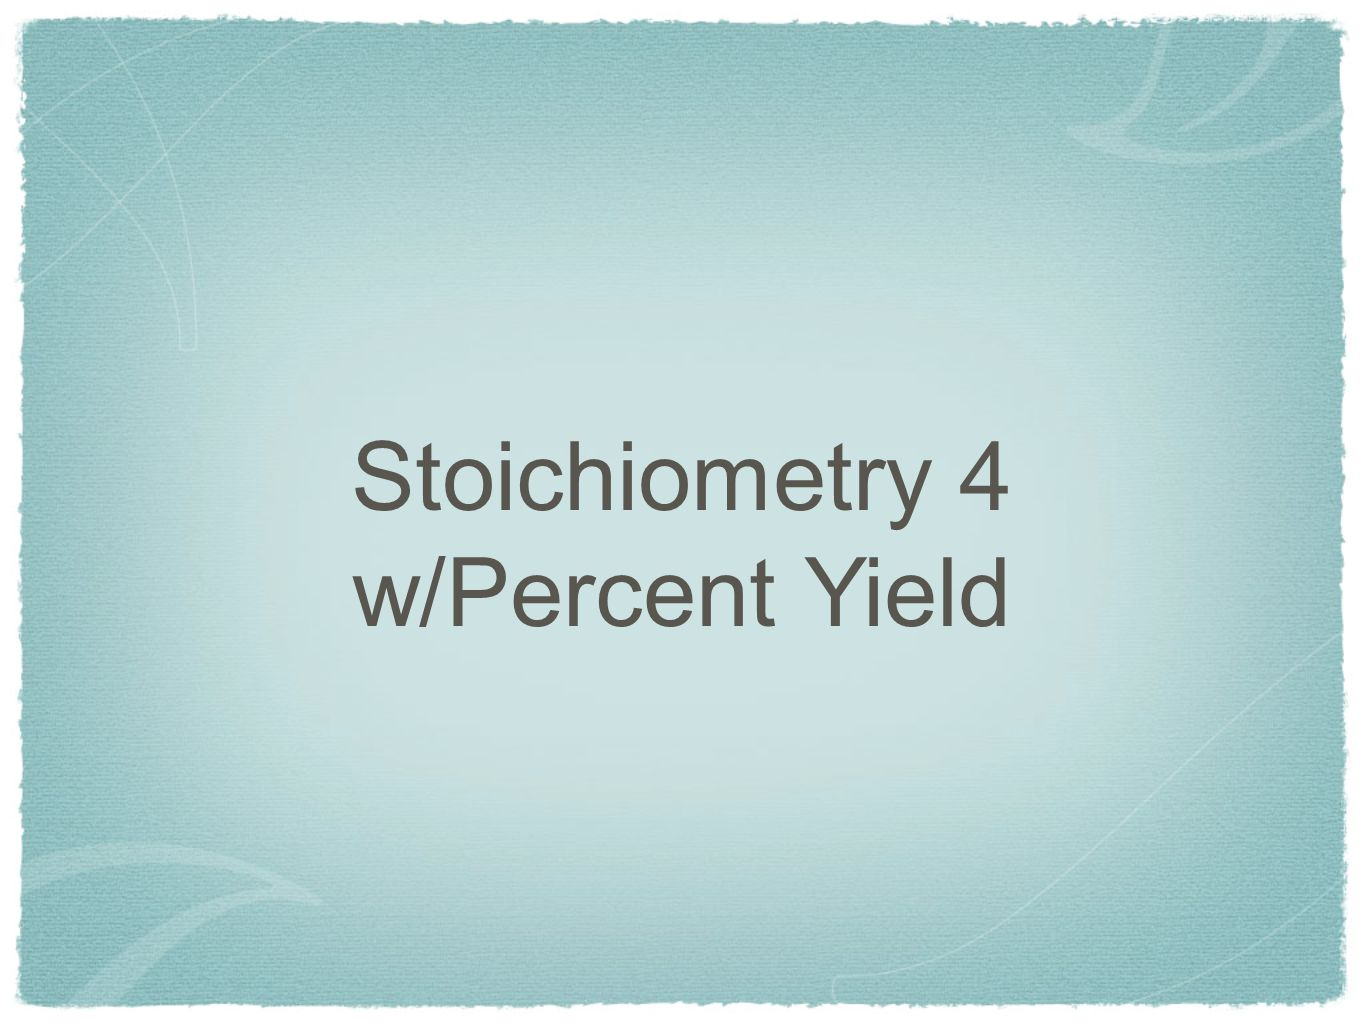 Stoichiometry 4 w/Percent Yield